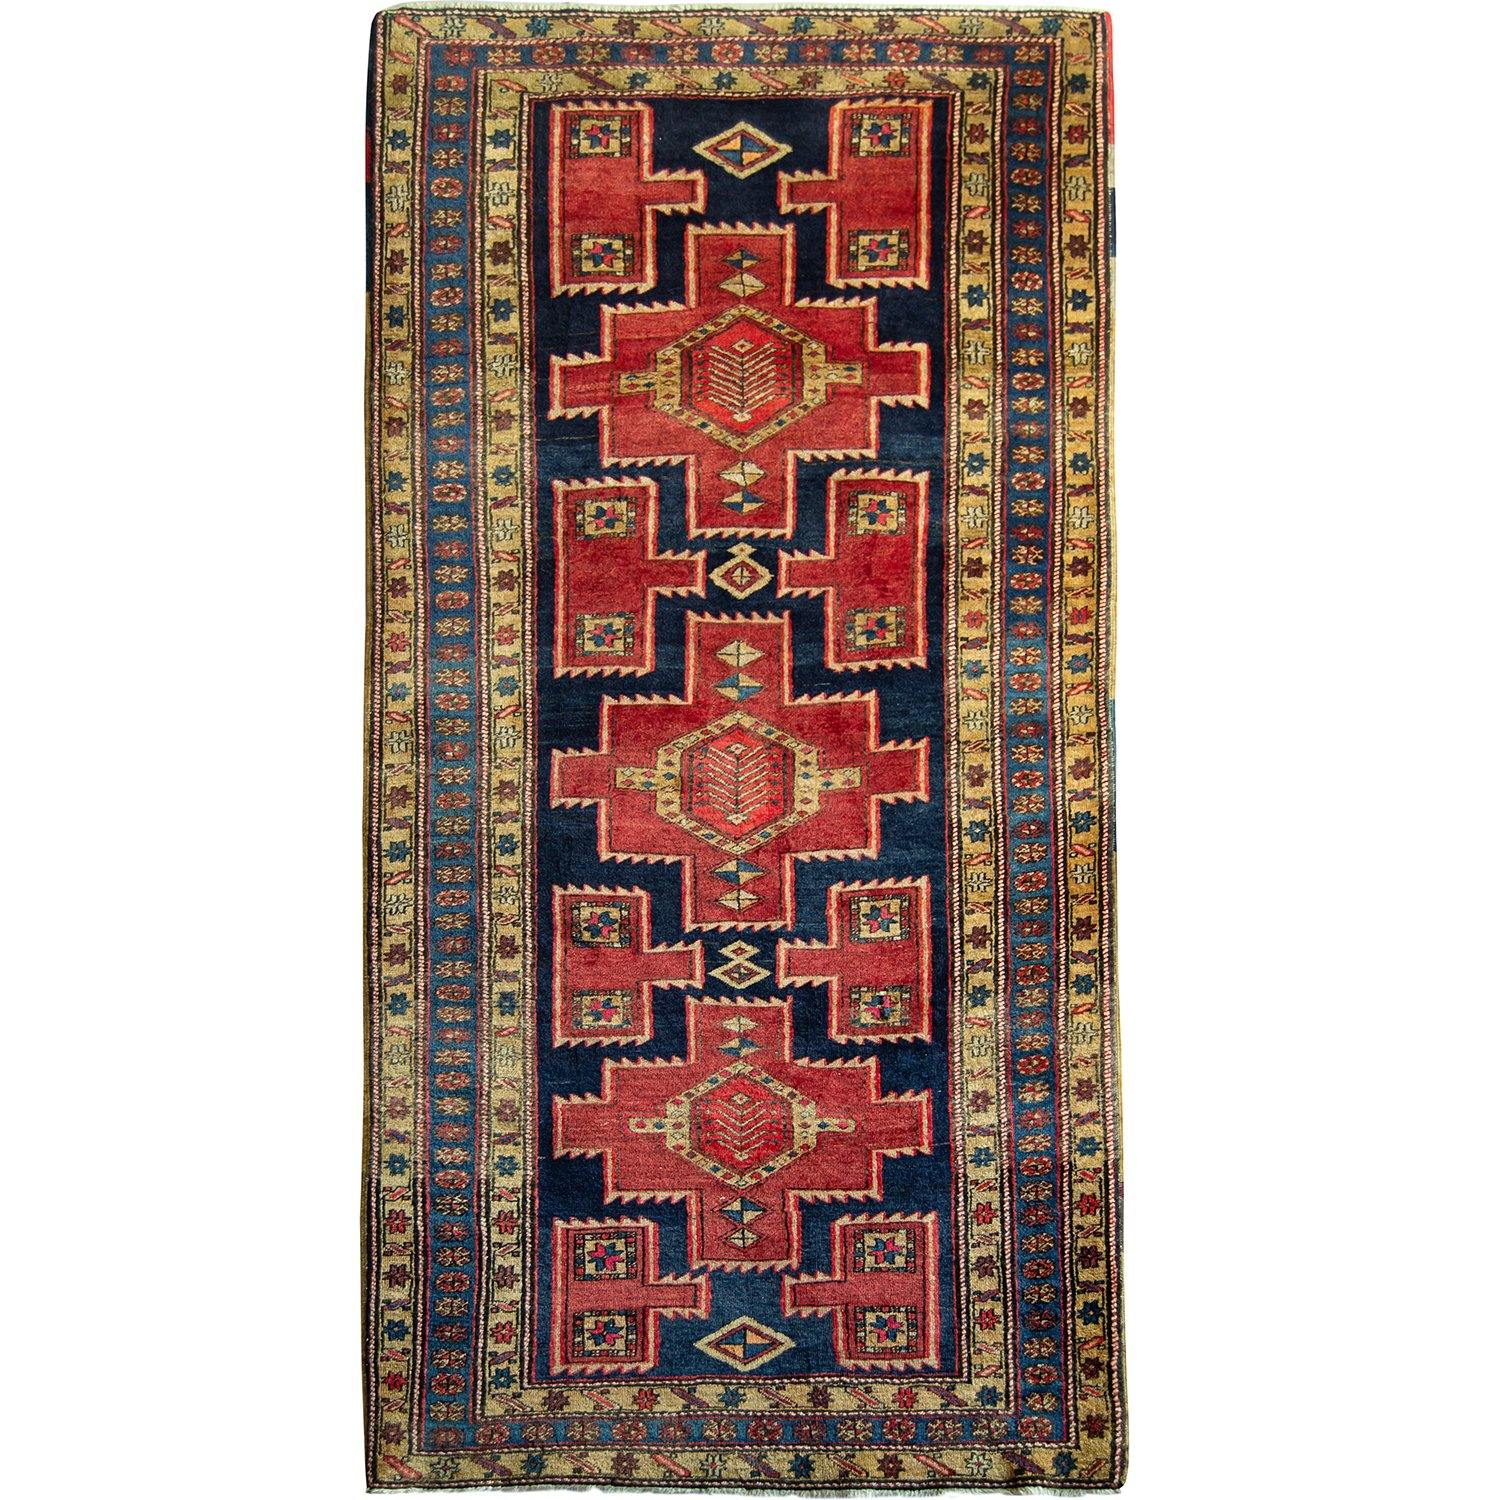 7015 Persian-Rug | House-of-Haghi | NewMarket | Auckland | NZ | Handmade Persian Rugs | Hand Knotted Persian Rugs